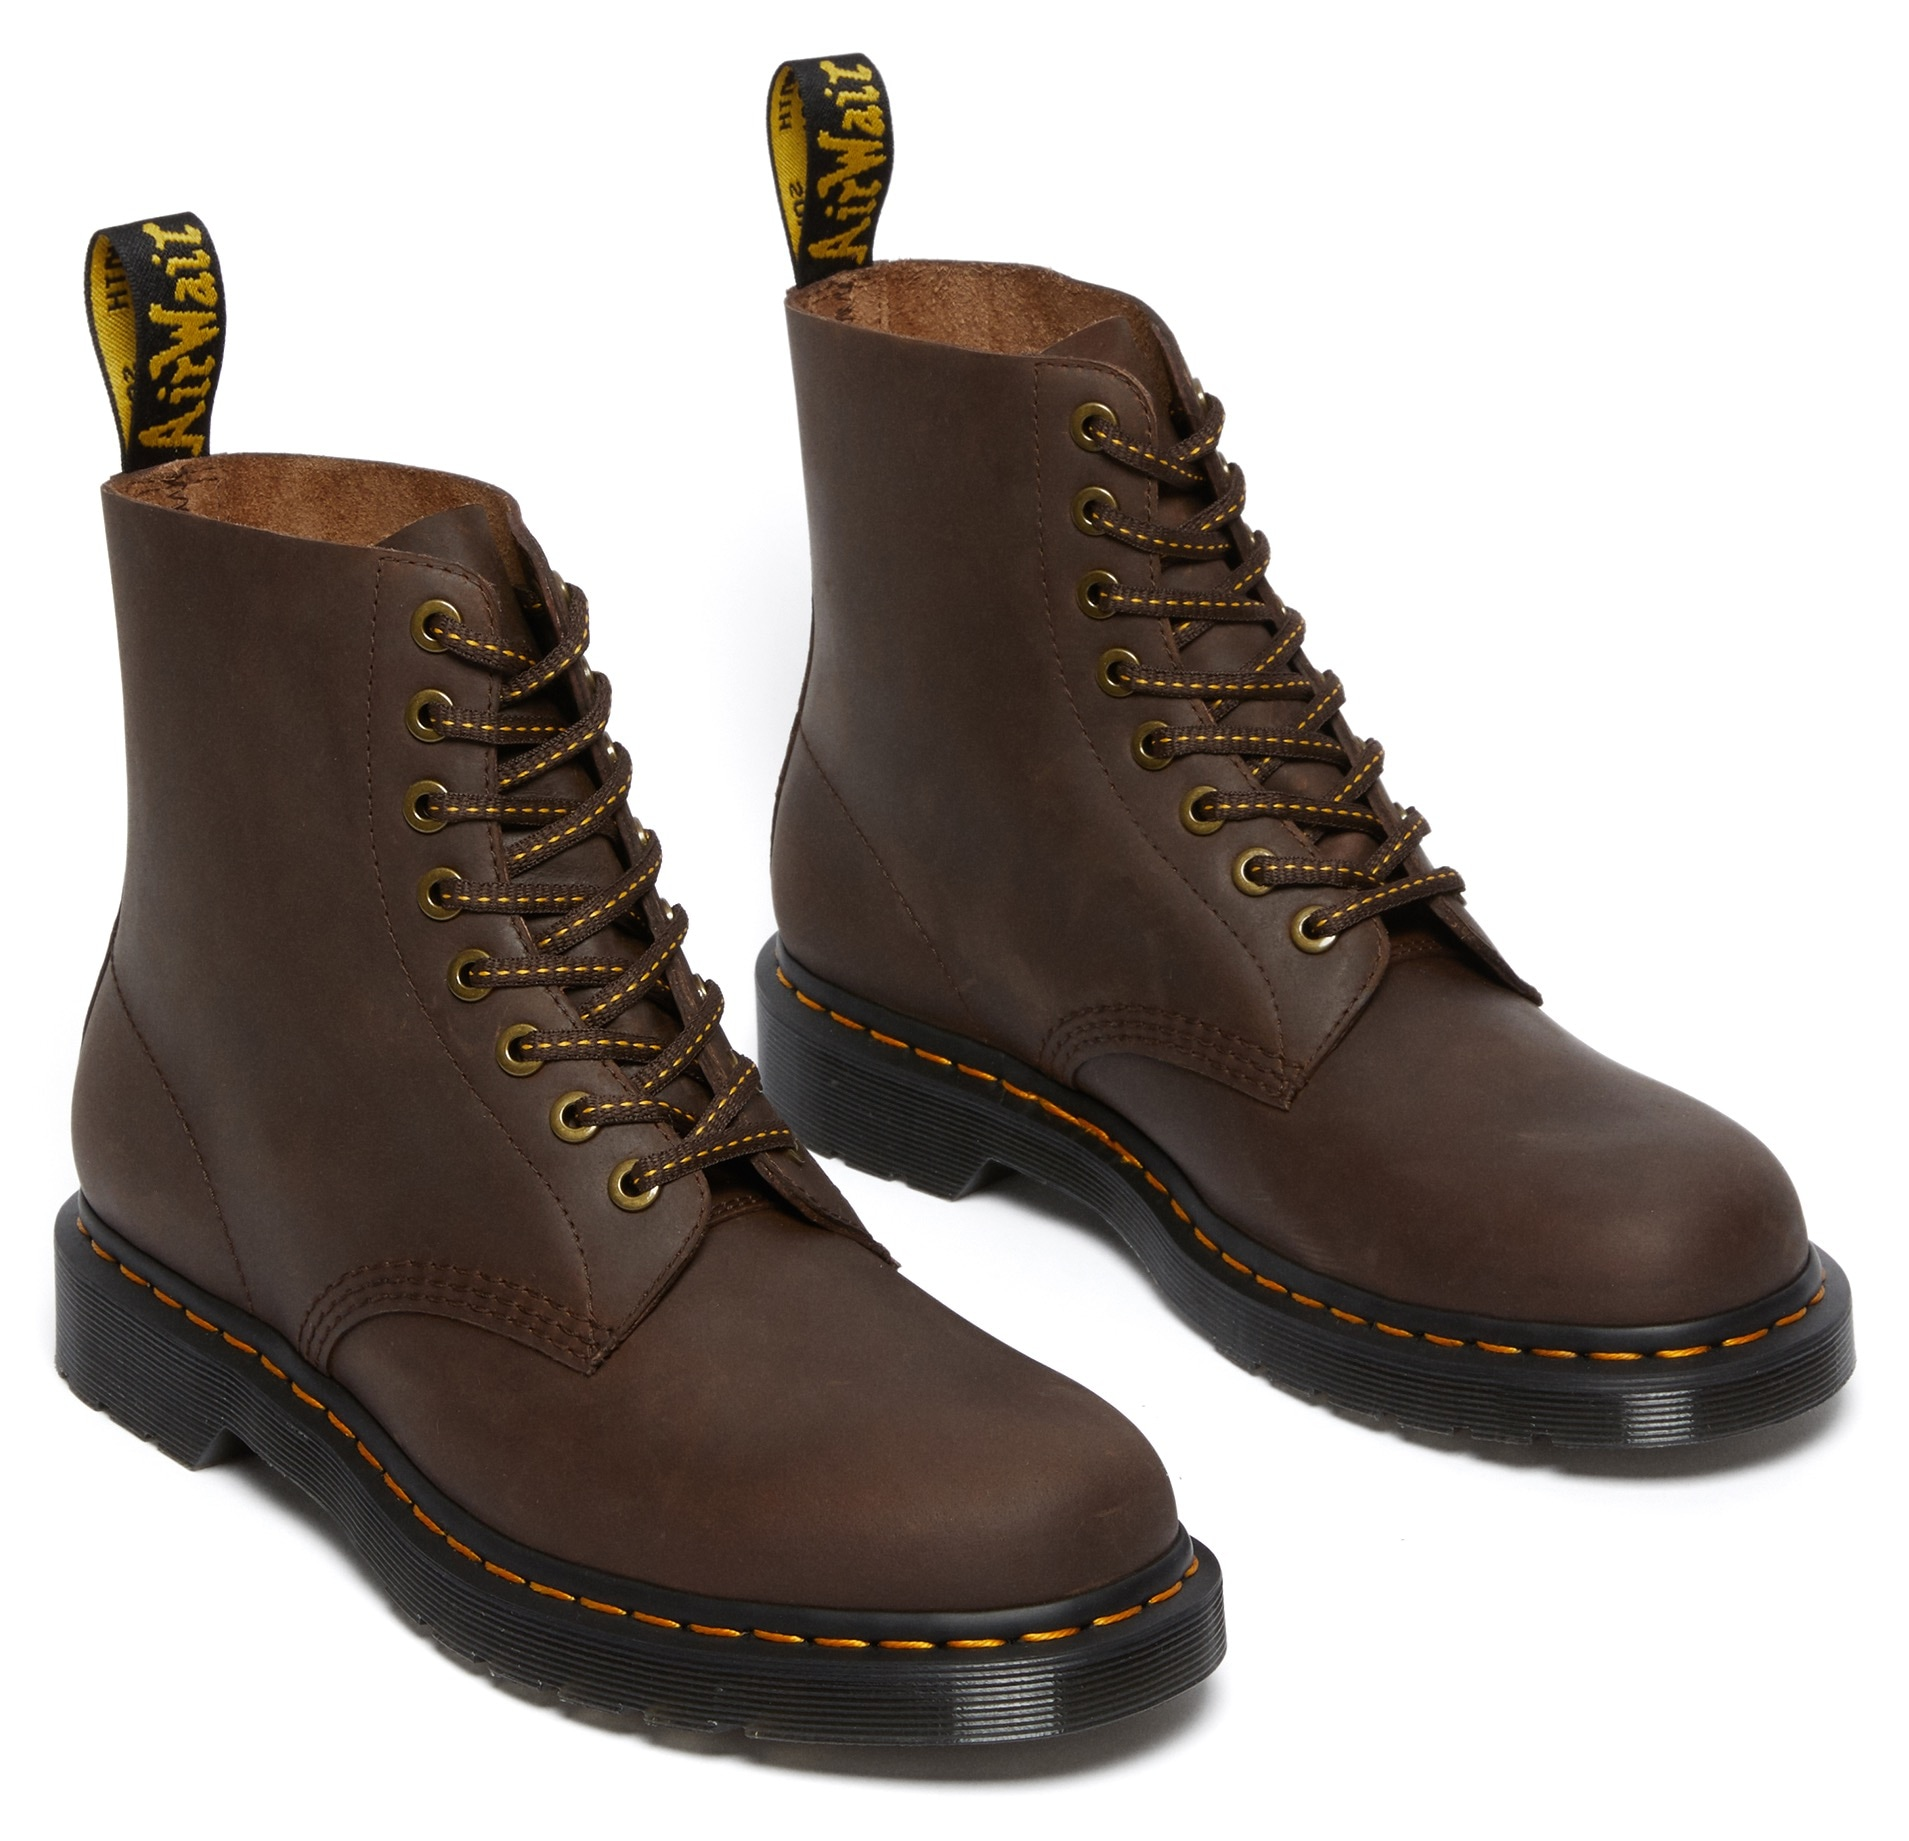 dr. martens -  Schnürstiefel 26379001 8-Eye Boot 1460 Pascal